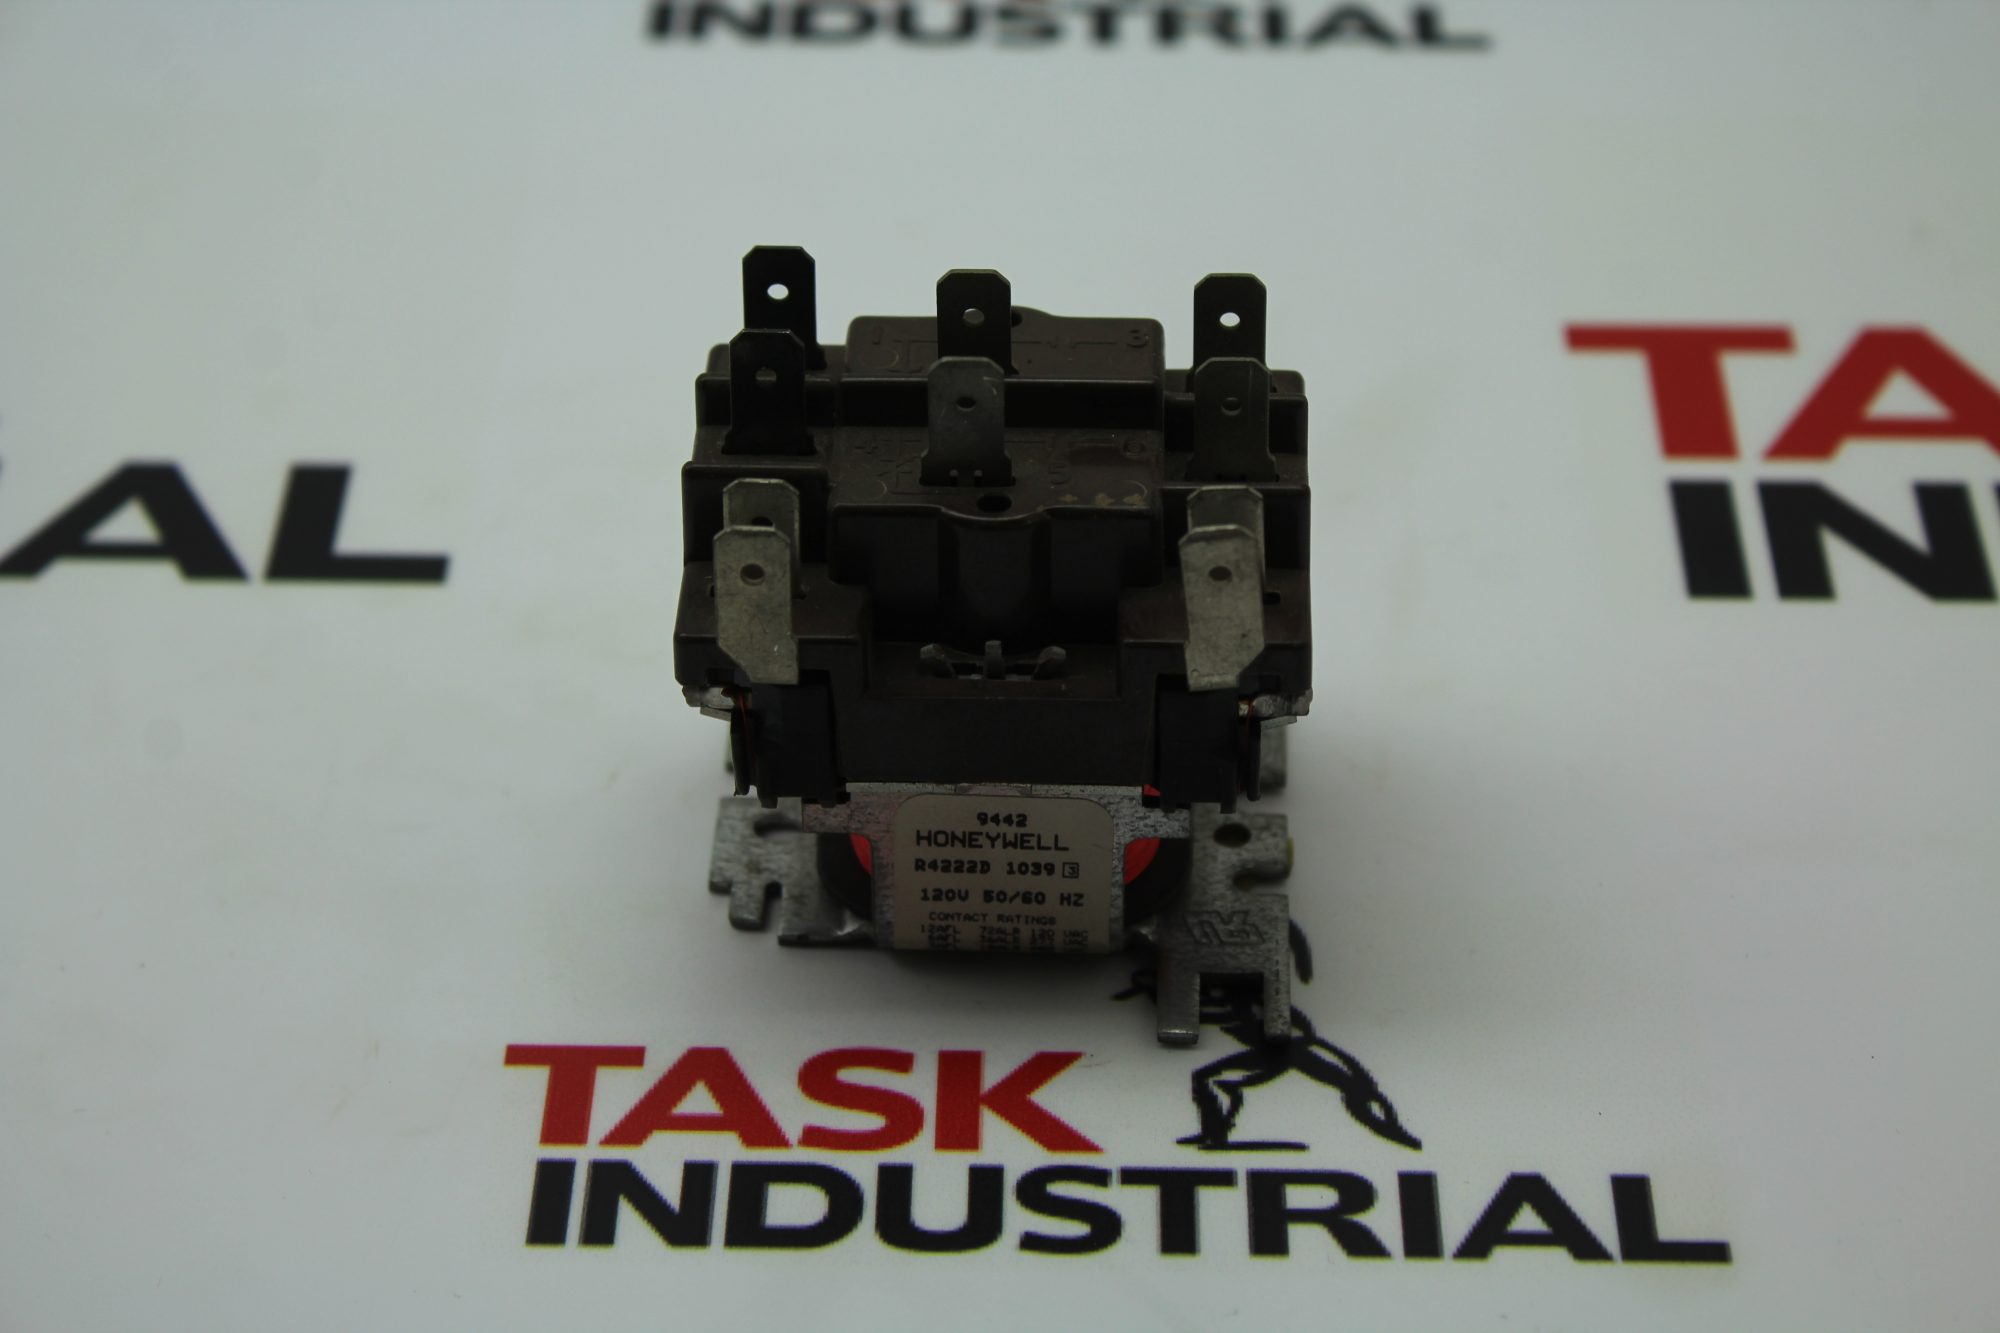 Honeywell R4222D 1039 Relay.